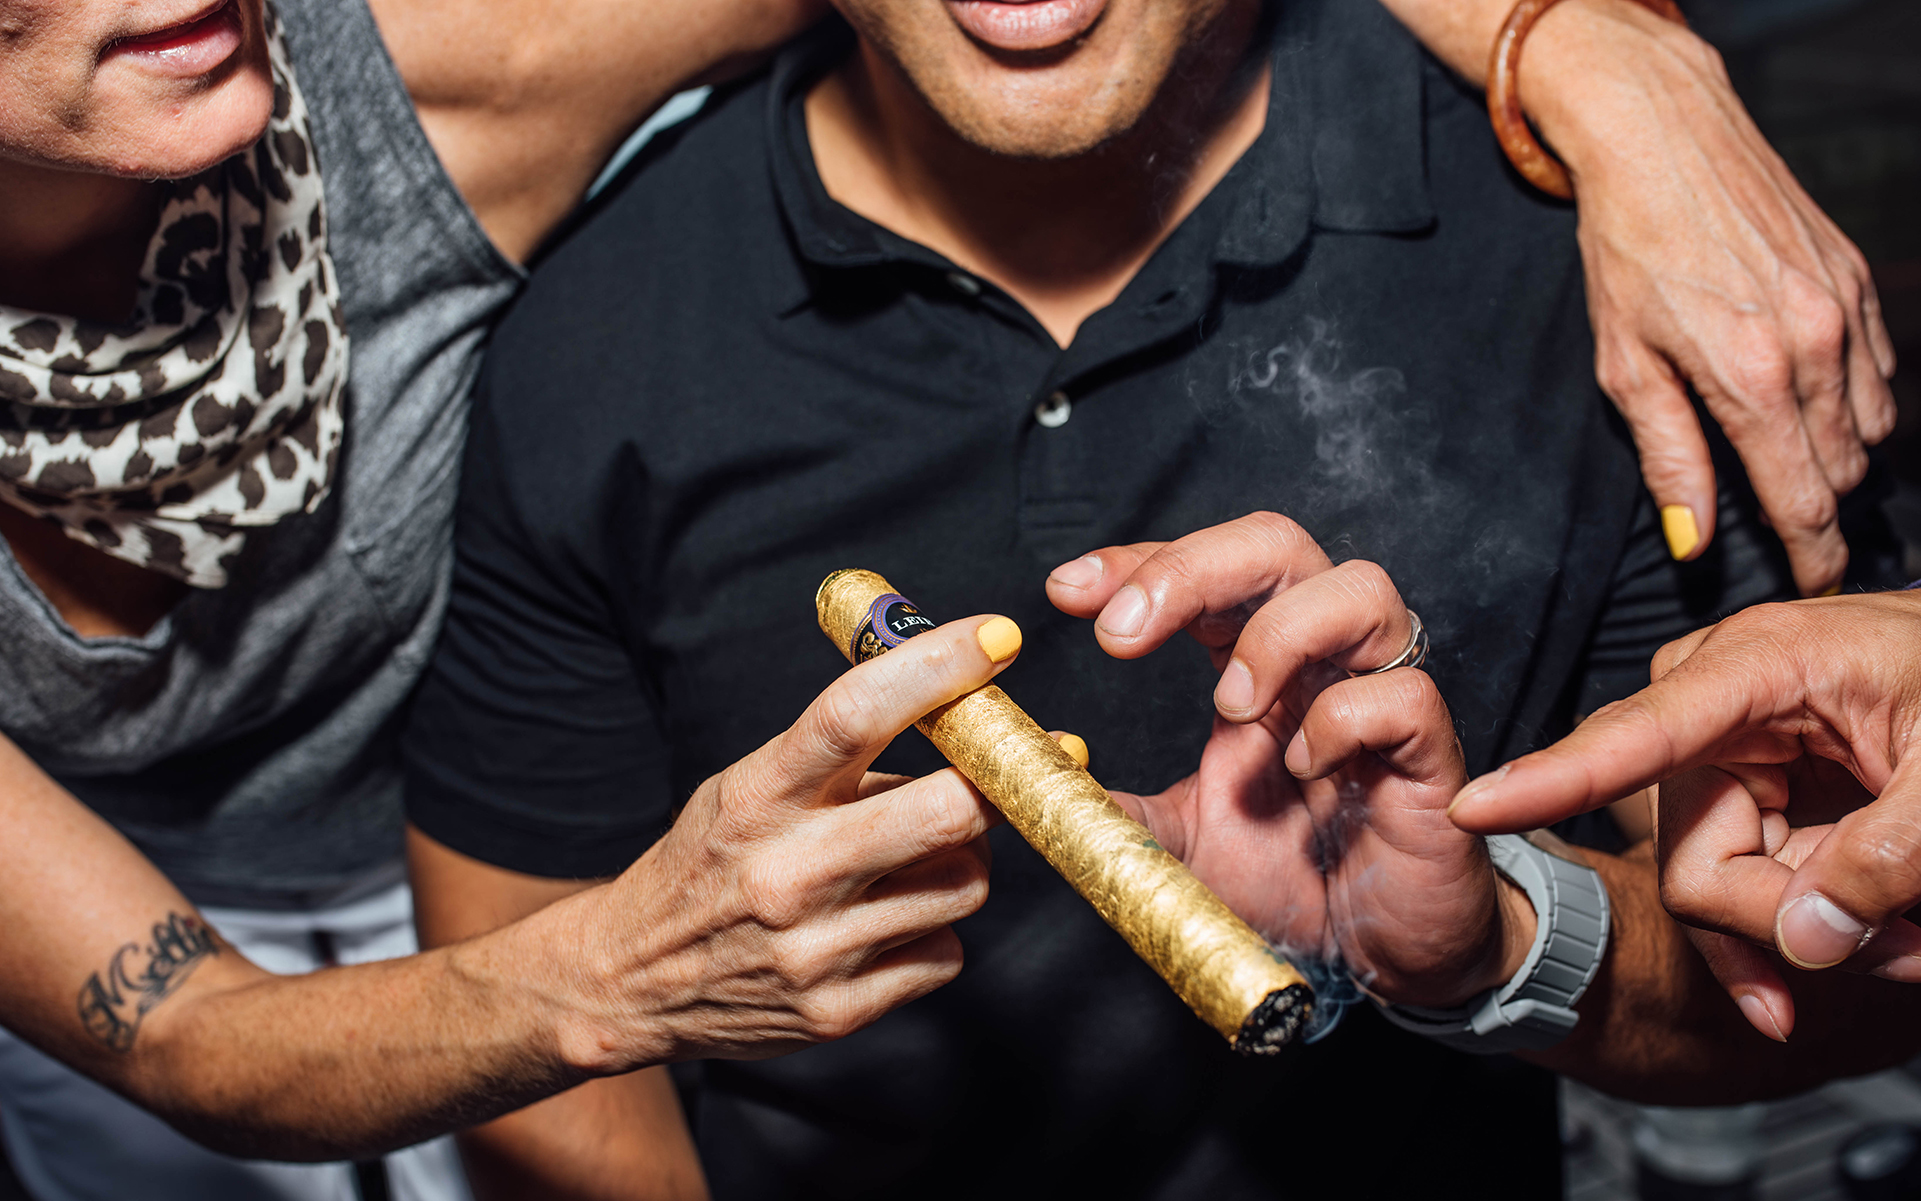 First Time in History? $10k Gilded 'Cannagar' Sells to Very Stoked Man in Seattle